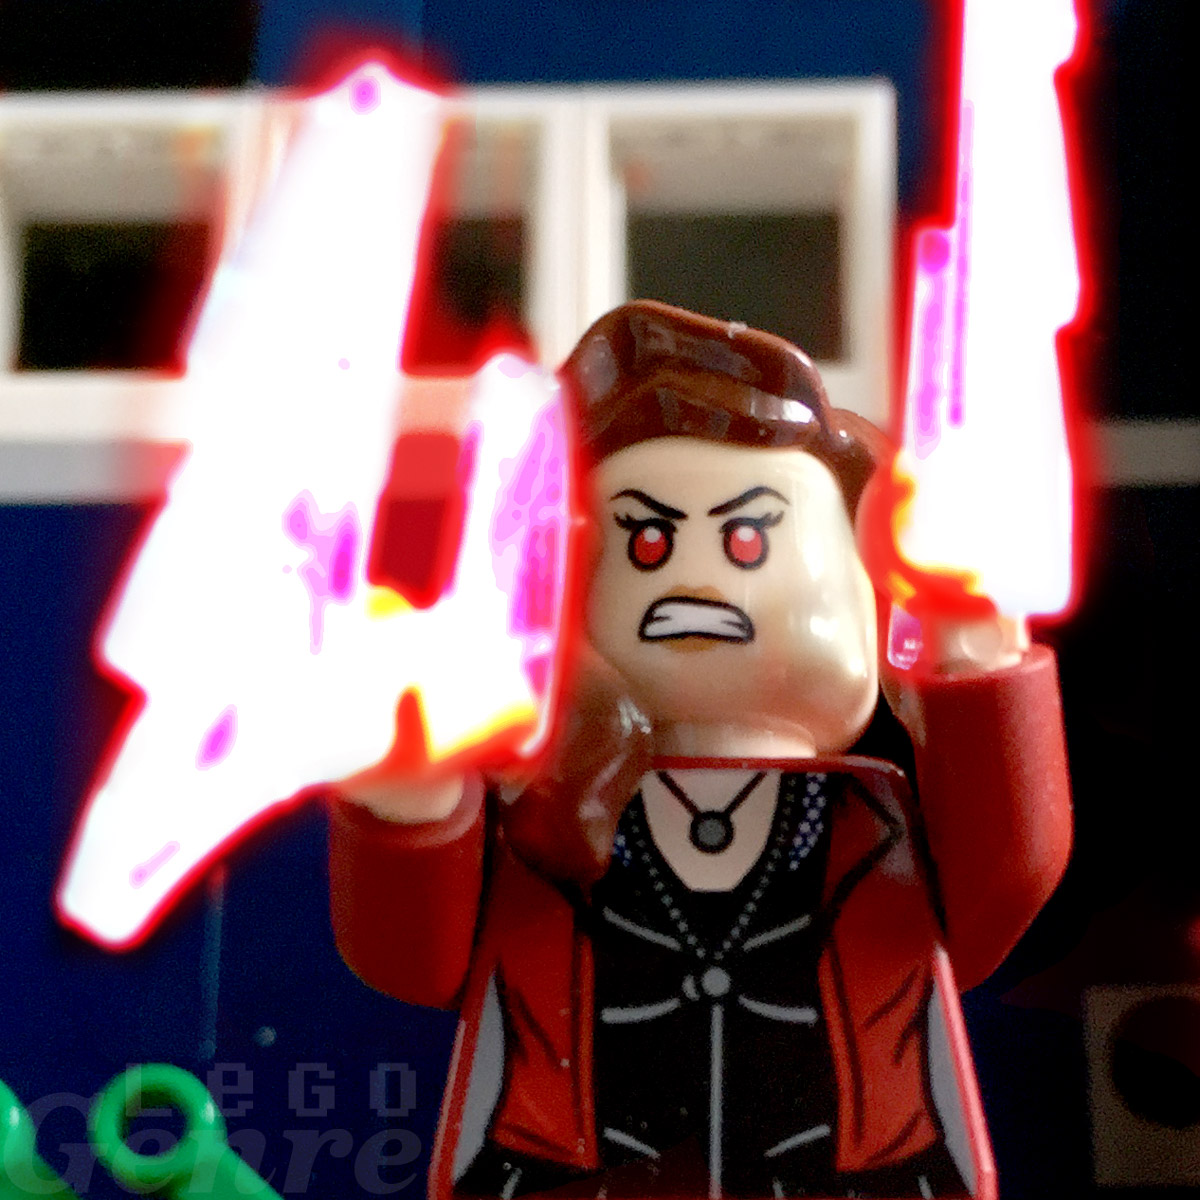 LegoGenre: Scarlet Witch